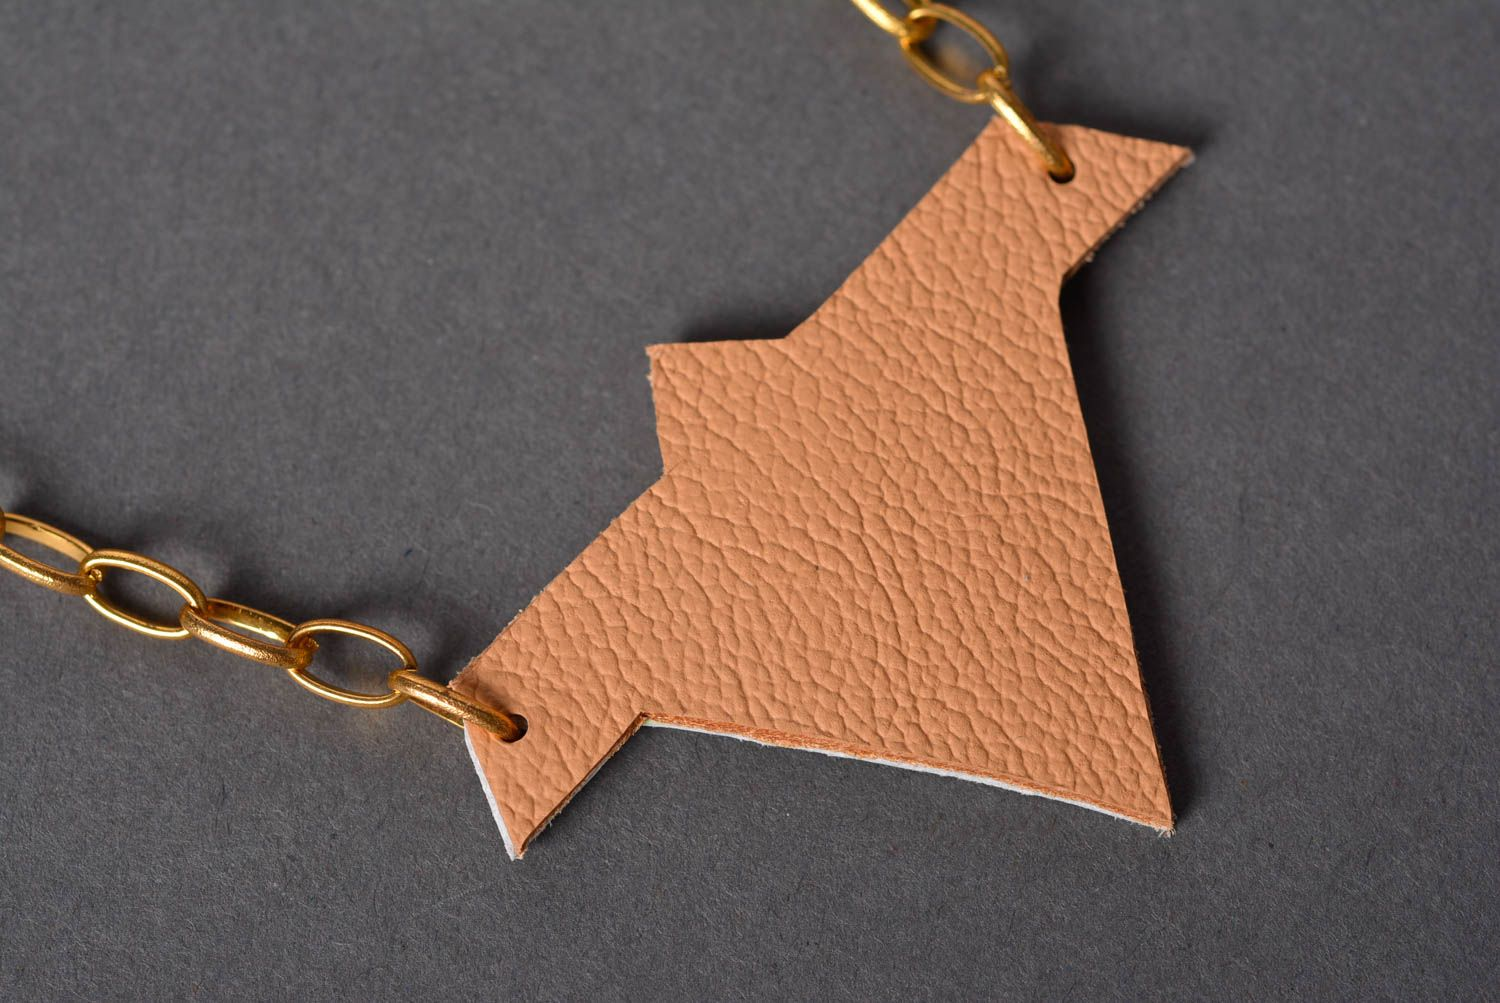 Handmade leather pendant necklace cool neck accessories artisan jewelry photo 4